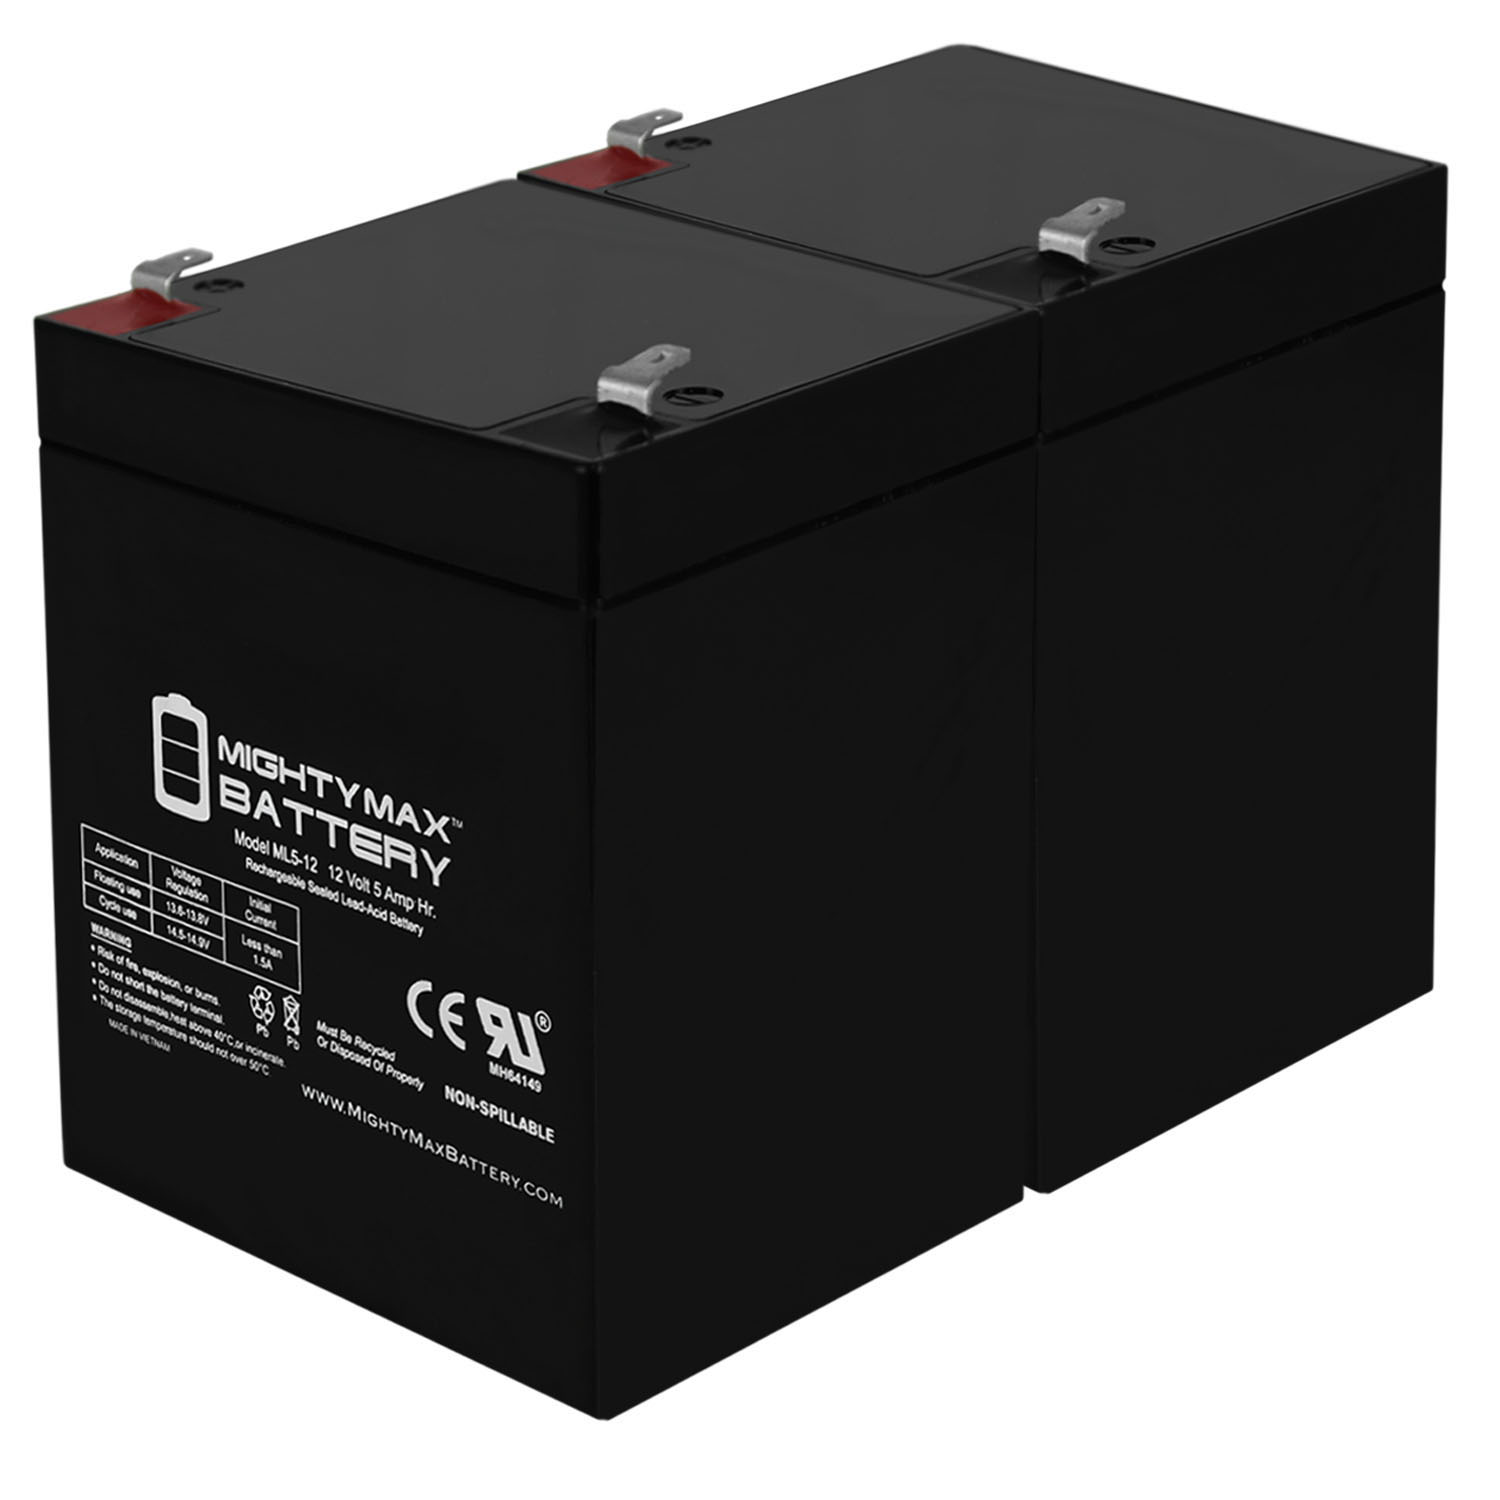 12V 5AH SLA Battery Replaces ADI 4110 Security System - 2 Pack